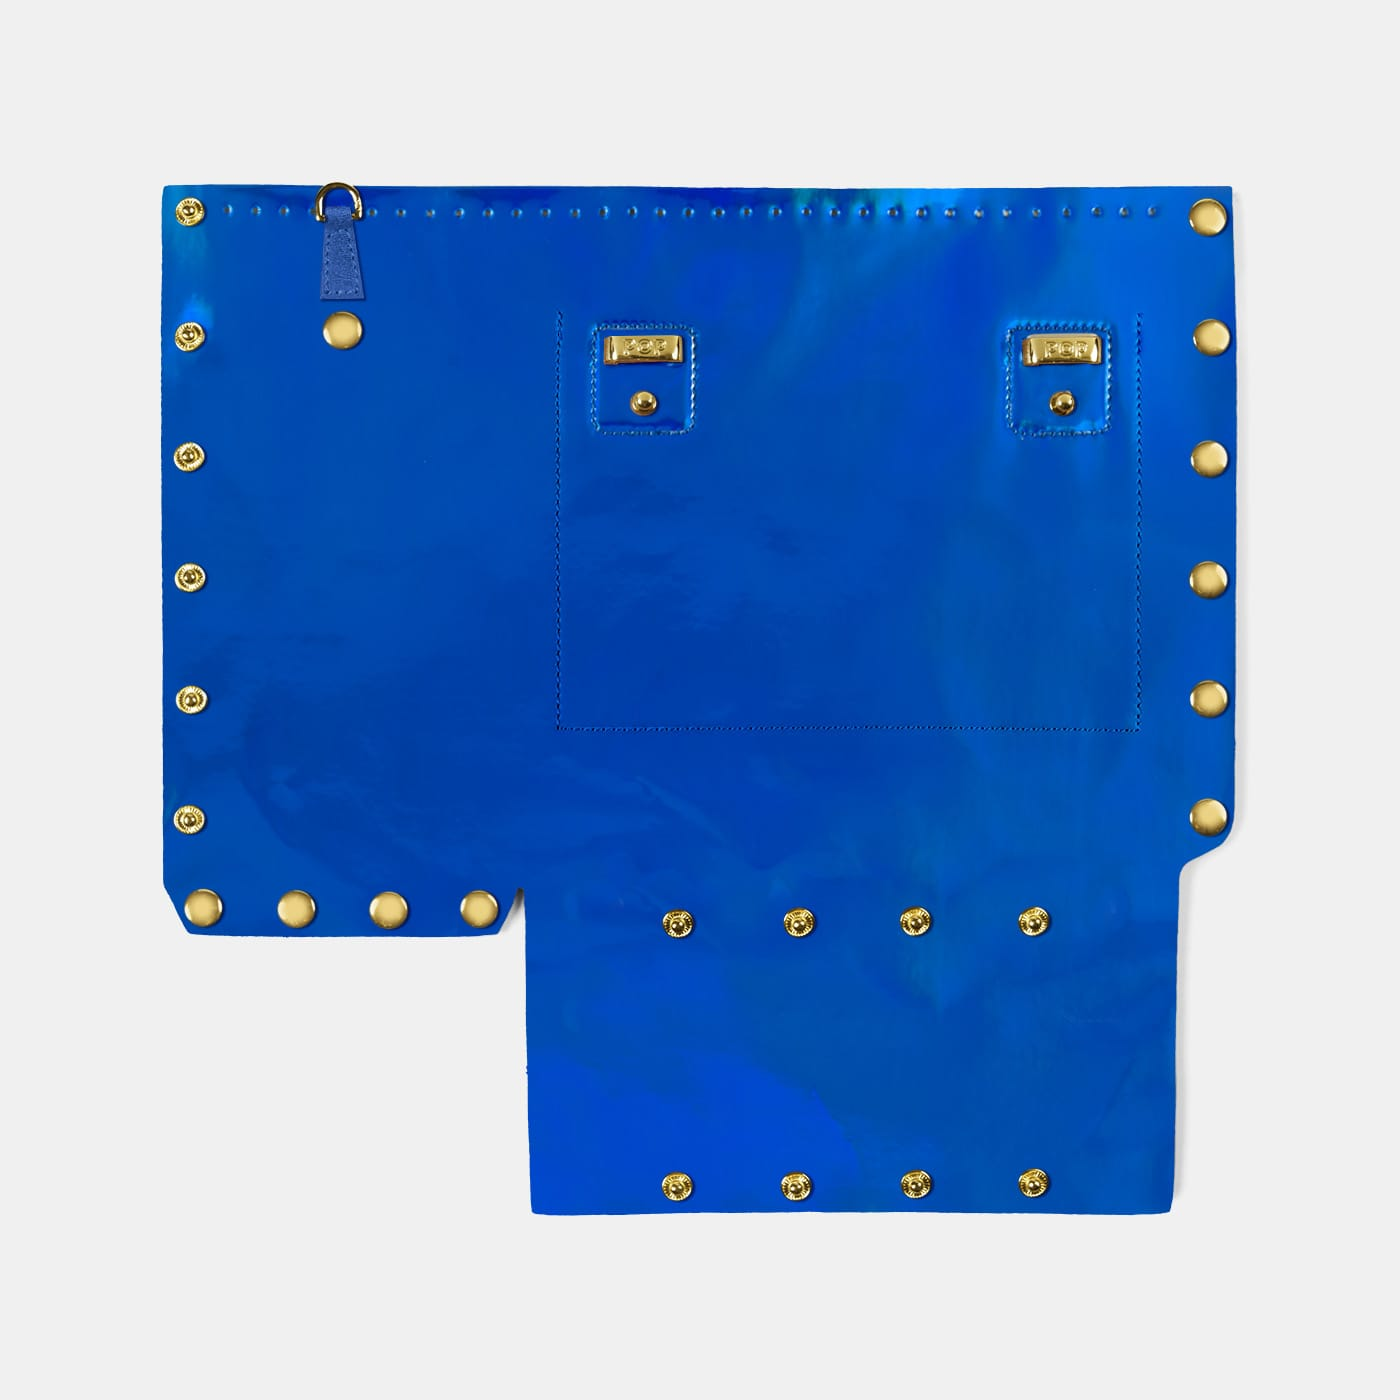 Pop Aurora Back Panel - Electric Blue Iridescent - Small